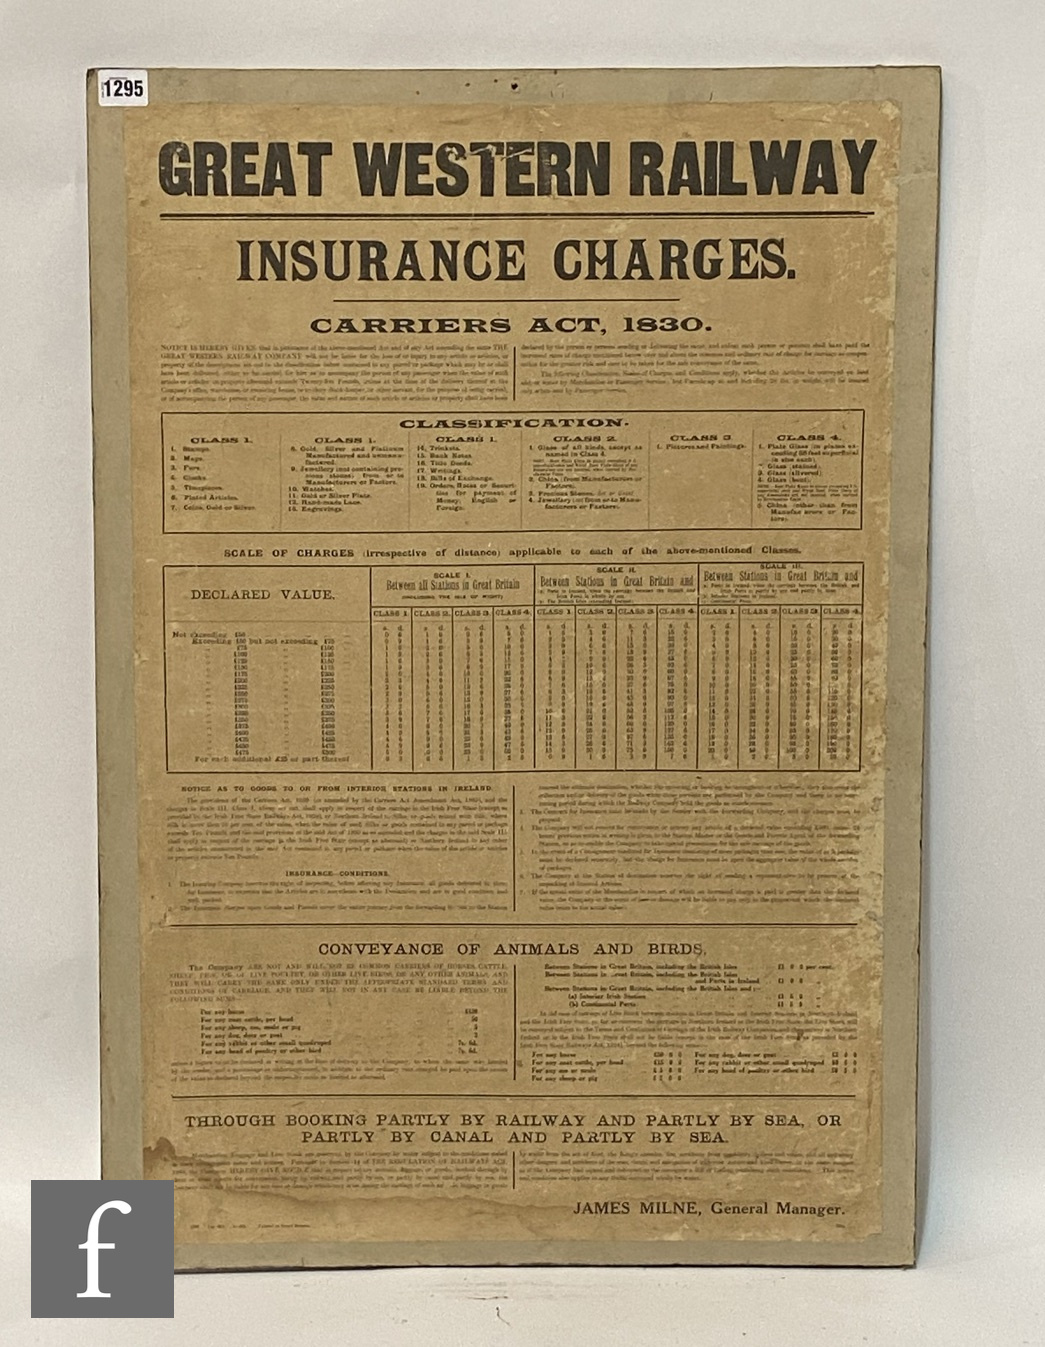 A Great Western railways By-Laws and Regulations display poster, another for Offences and